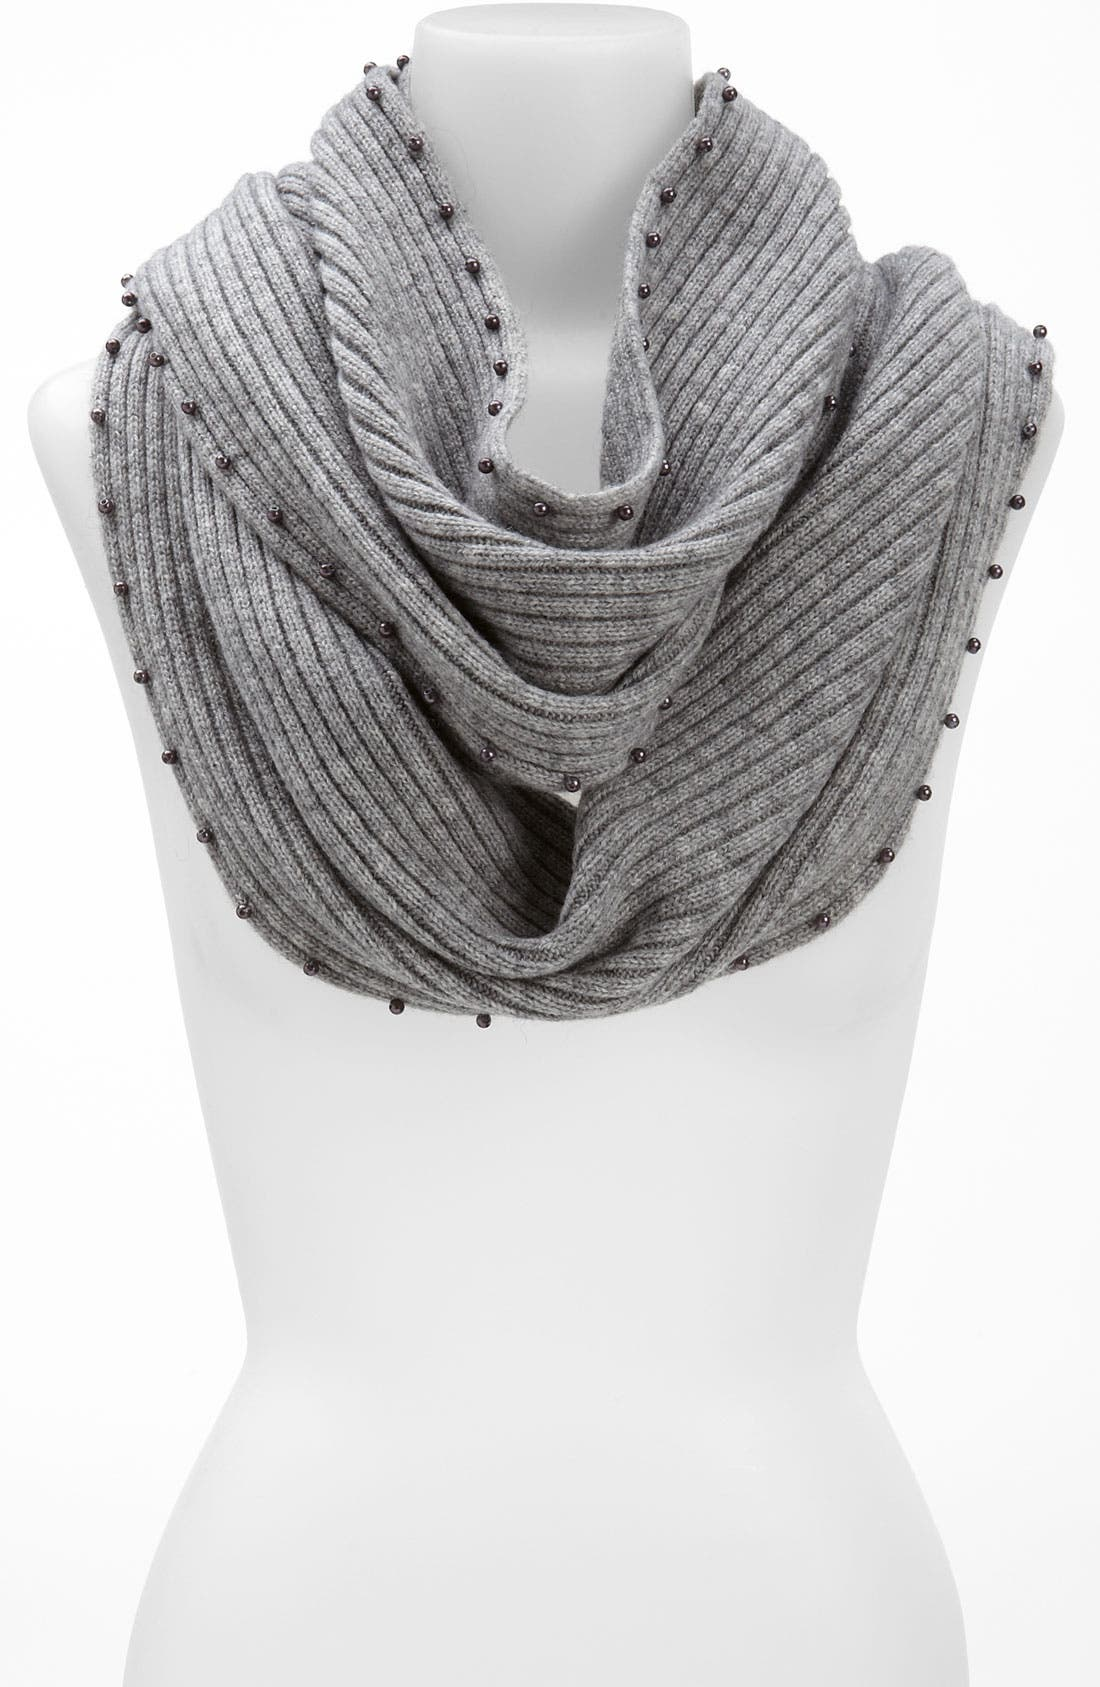 Main Image - Laundry by Shelli Segal Wool Infinity Scarf